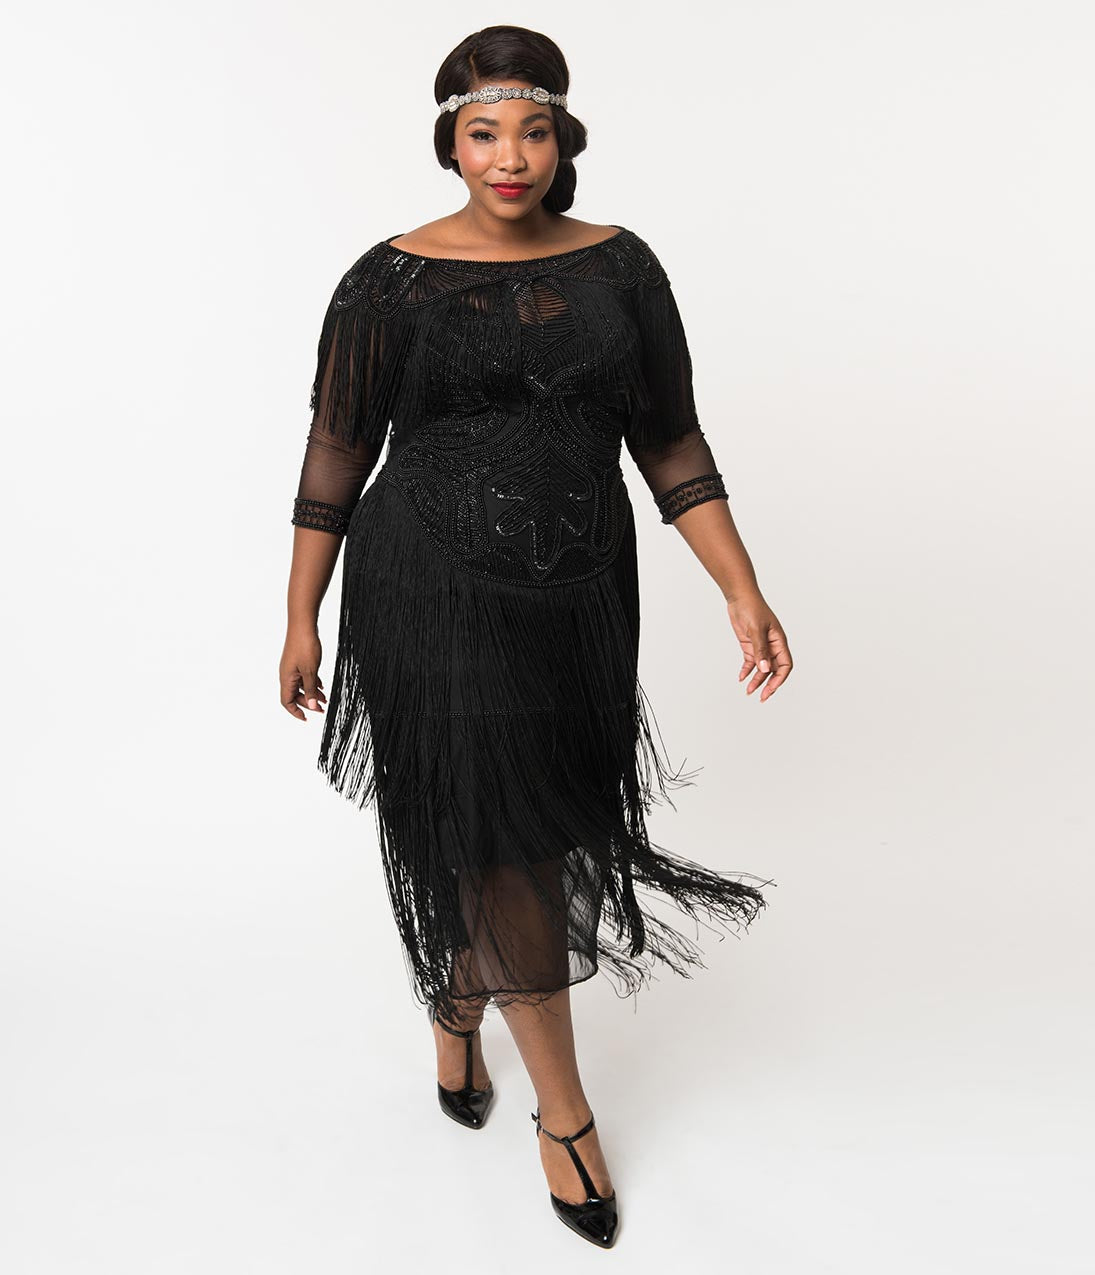 Vintage Evening Dresses and Formal Evening Gowns Plus Size 1920S Style Black Beaded Mesh Glam Fringe Flapper Maxi Gown $186.00 AT vintagedancer.com